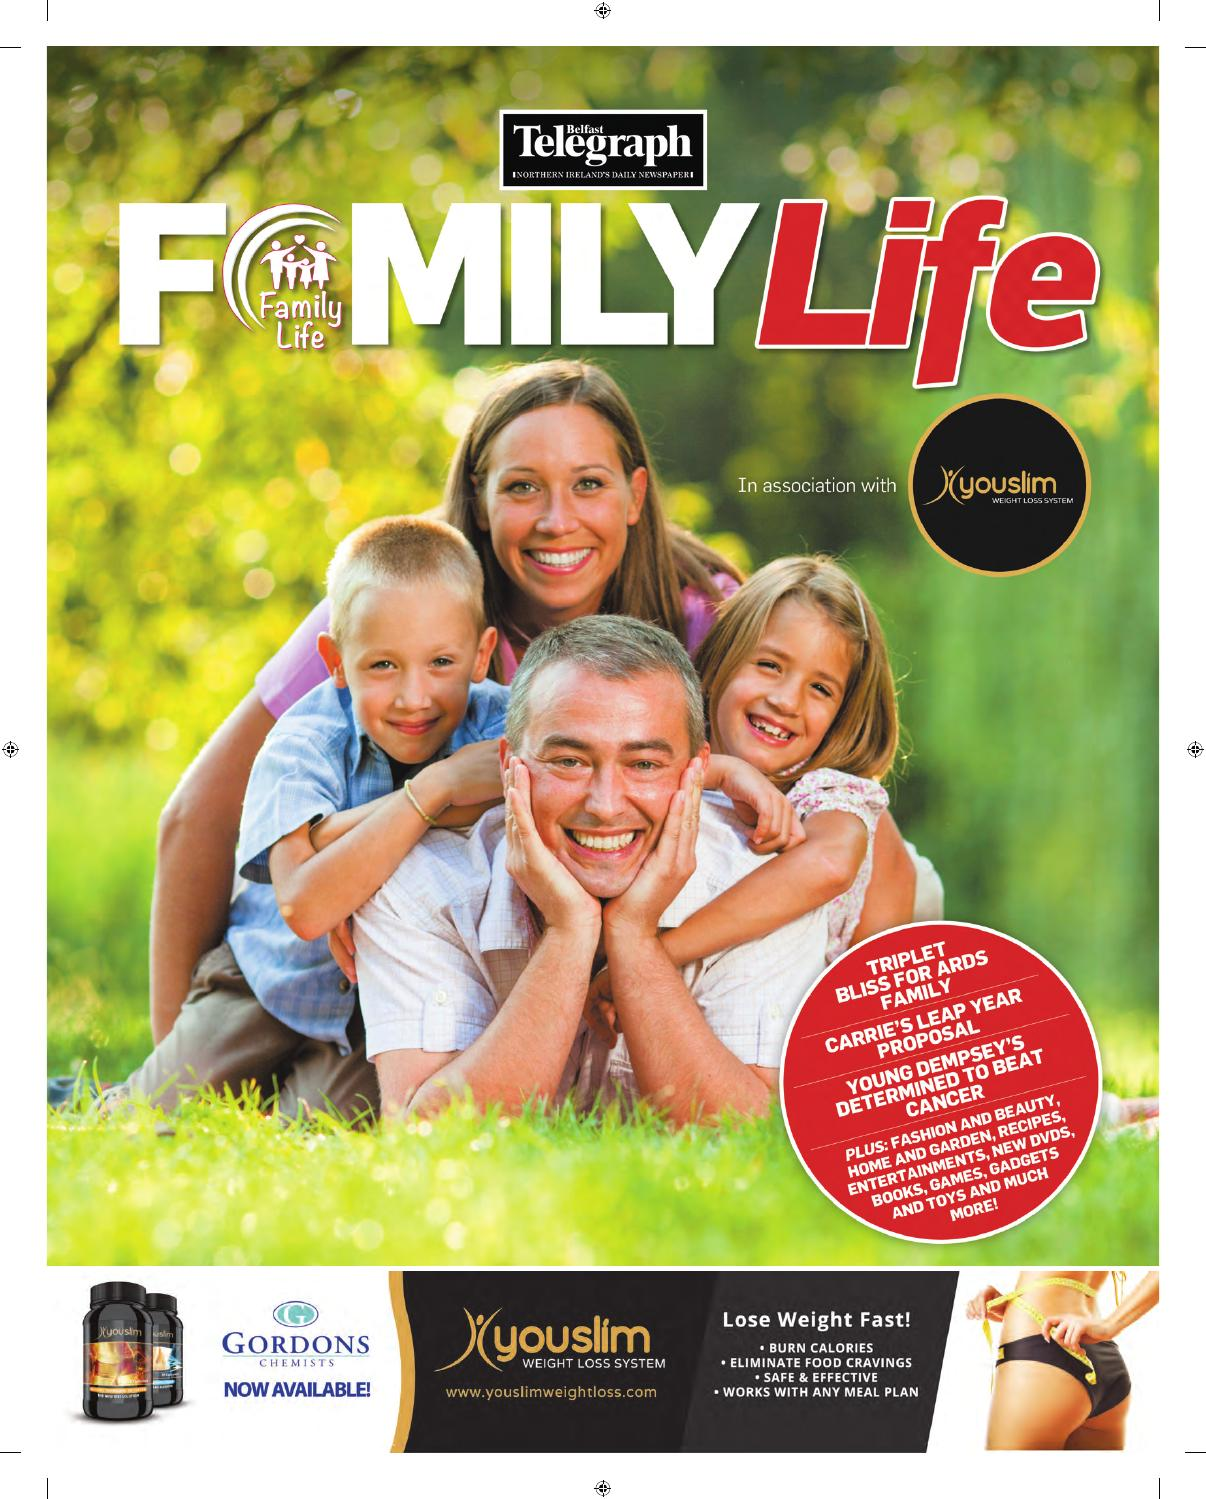 Family Life February 2016 By Belfast Telegraph Issuu Wallpaper Stiker Dinding Lux 5 23pr